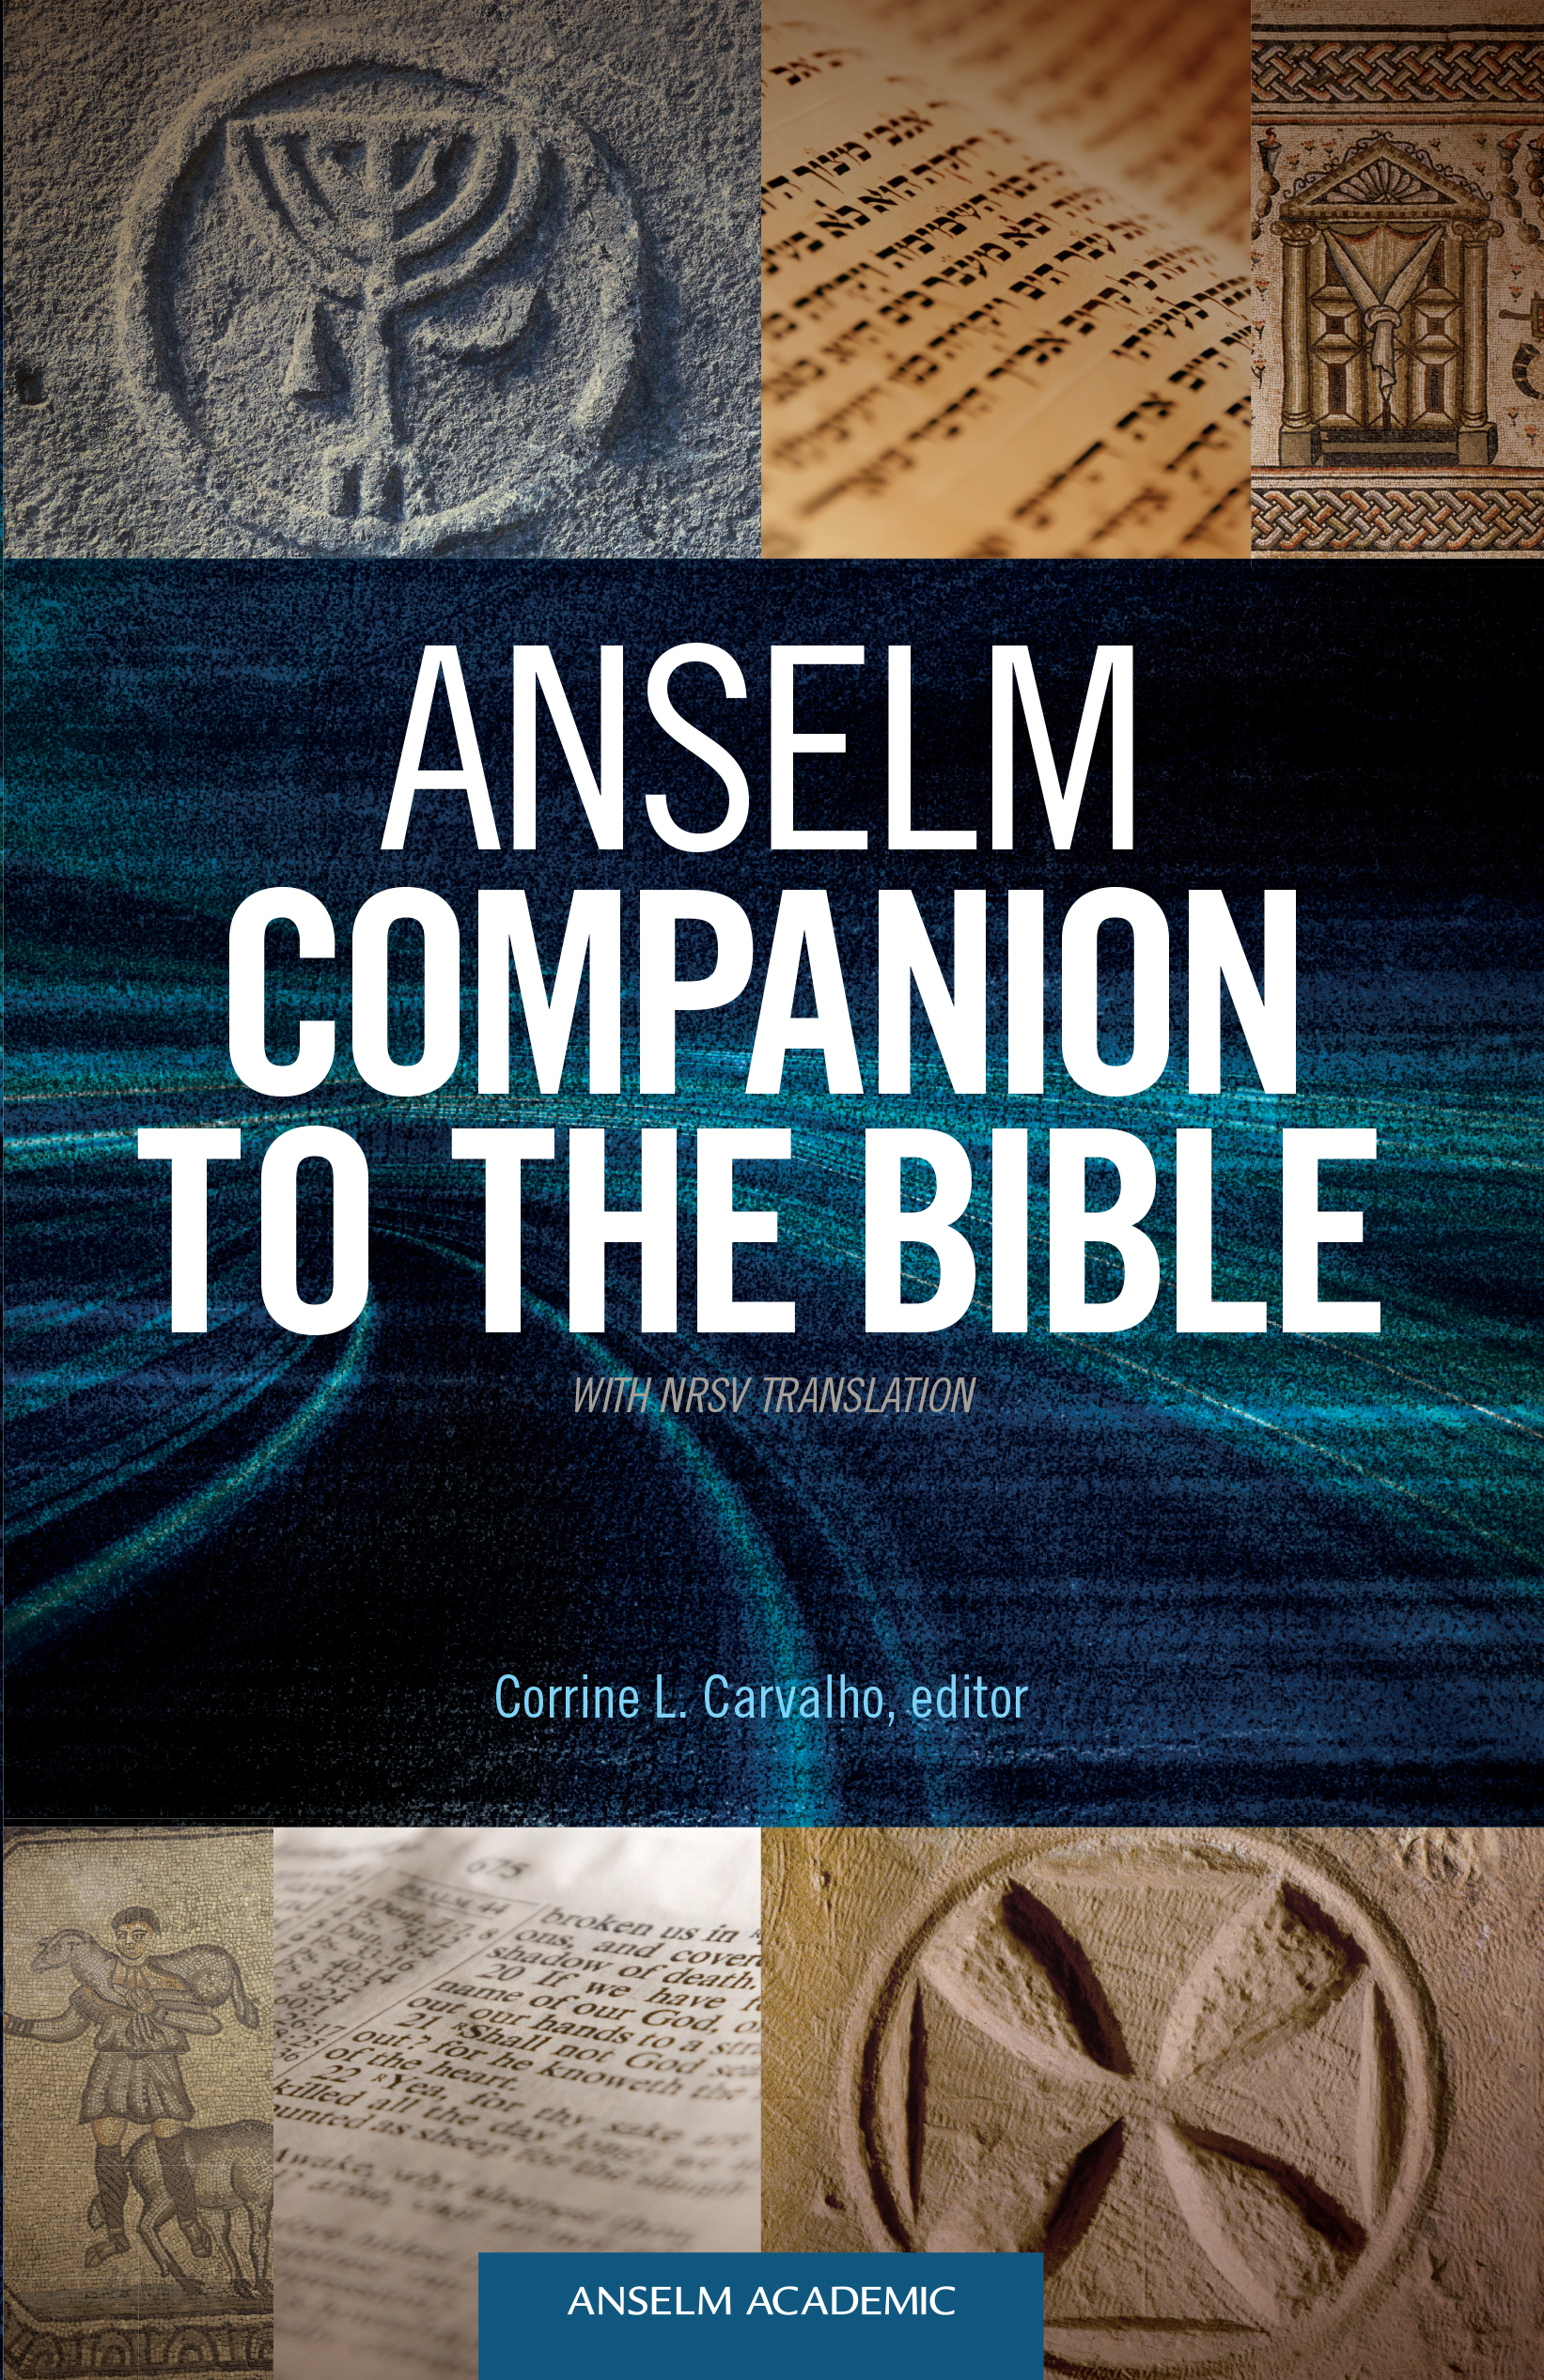 Anselm Companion to the Bible - With NRSV Translation